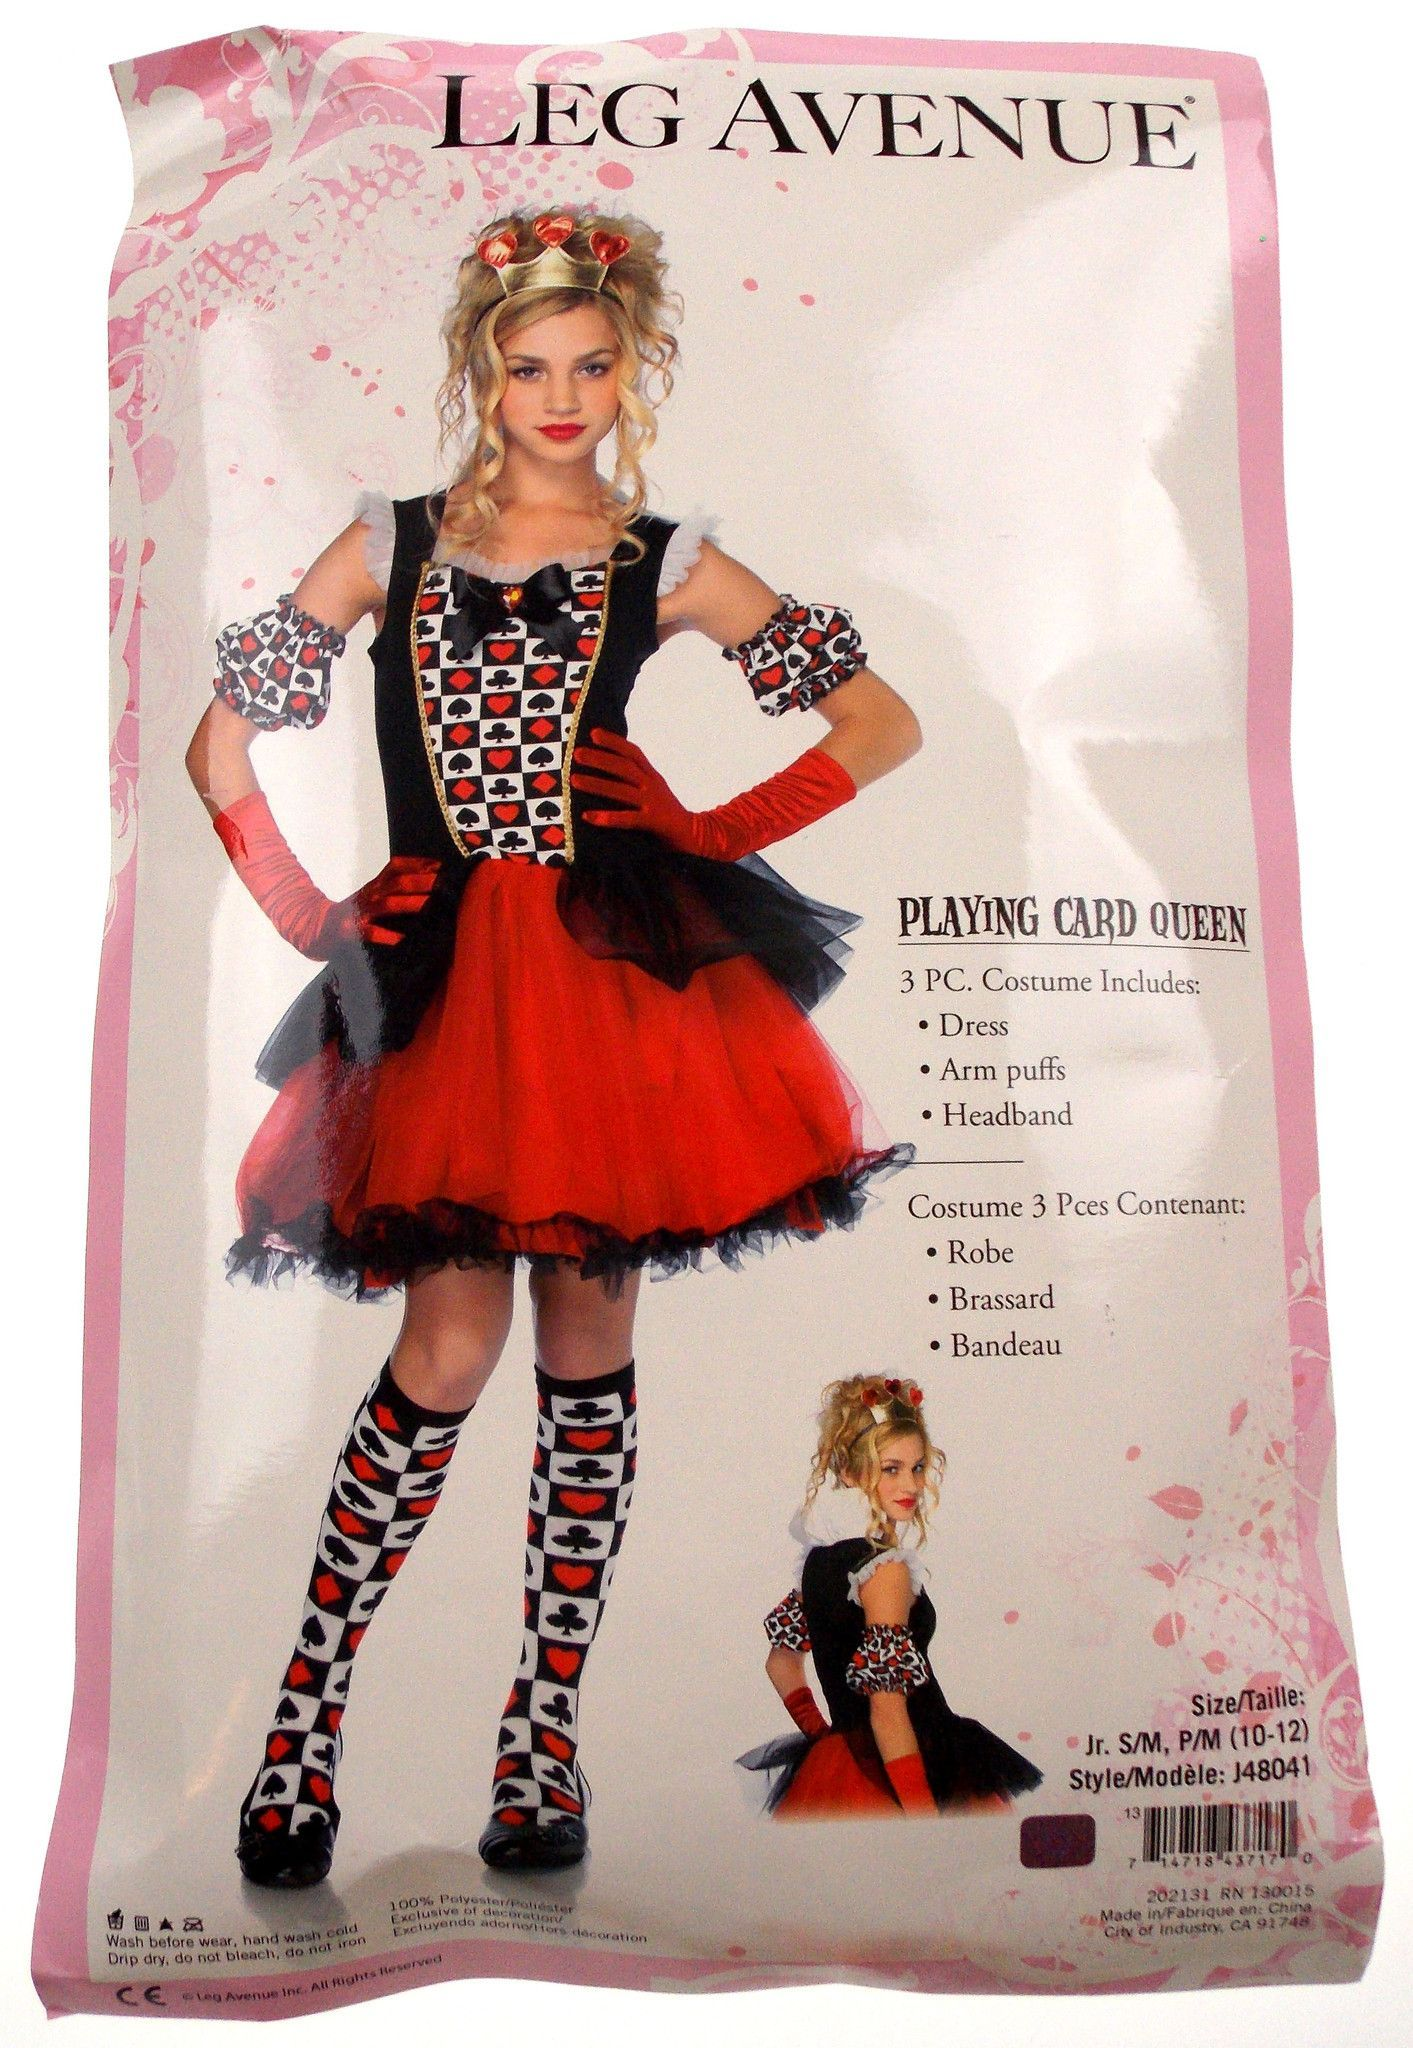 Diy Halloween Costumes For Girls Age 11 13.Leg Avenue Playing Card Queen Jr Girl S M Halloween Costume Cosplay